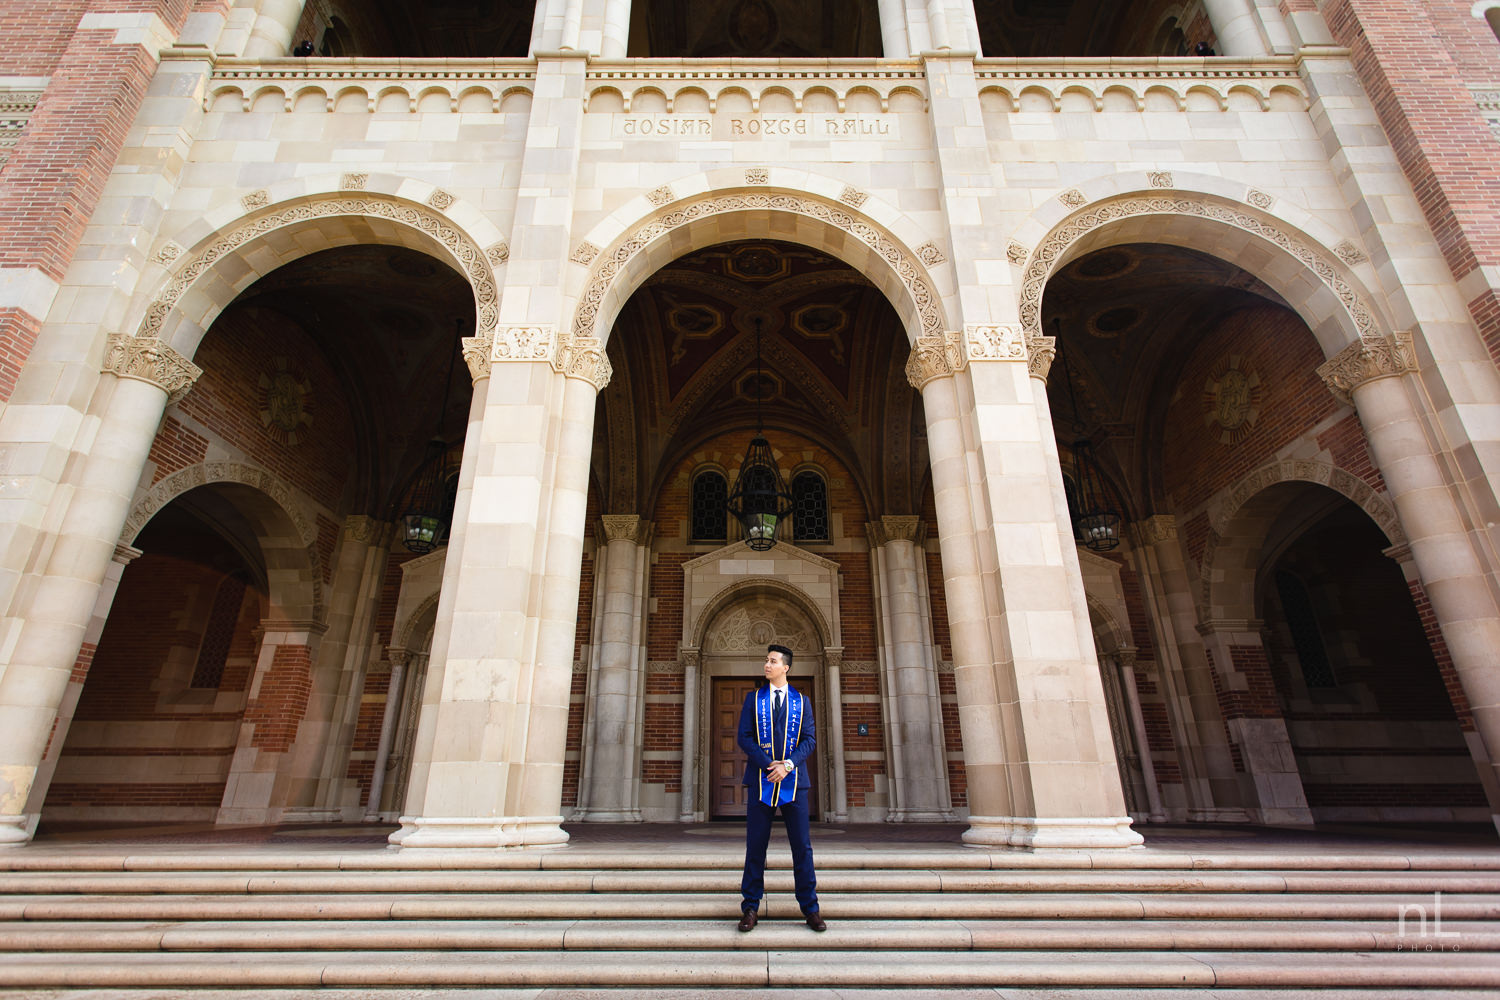 UCLA Class of 2019 graduate wearing suit and tie and graduation sash standing in front of Royce Hall.